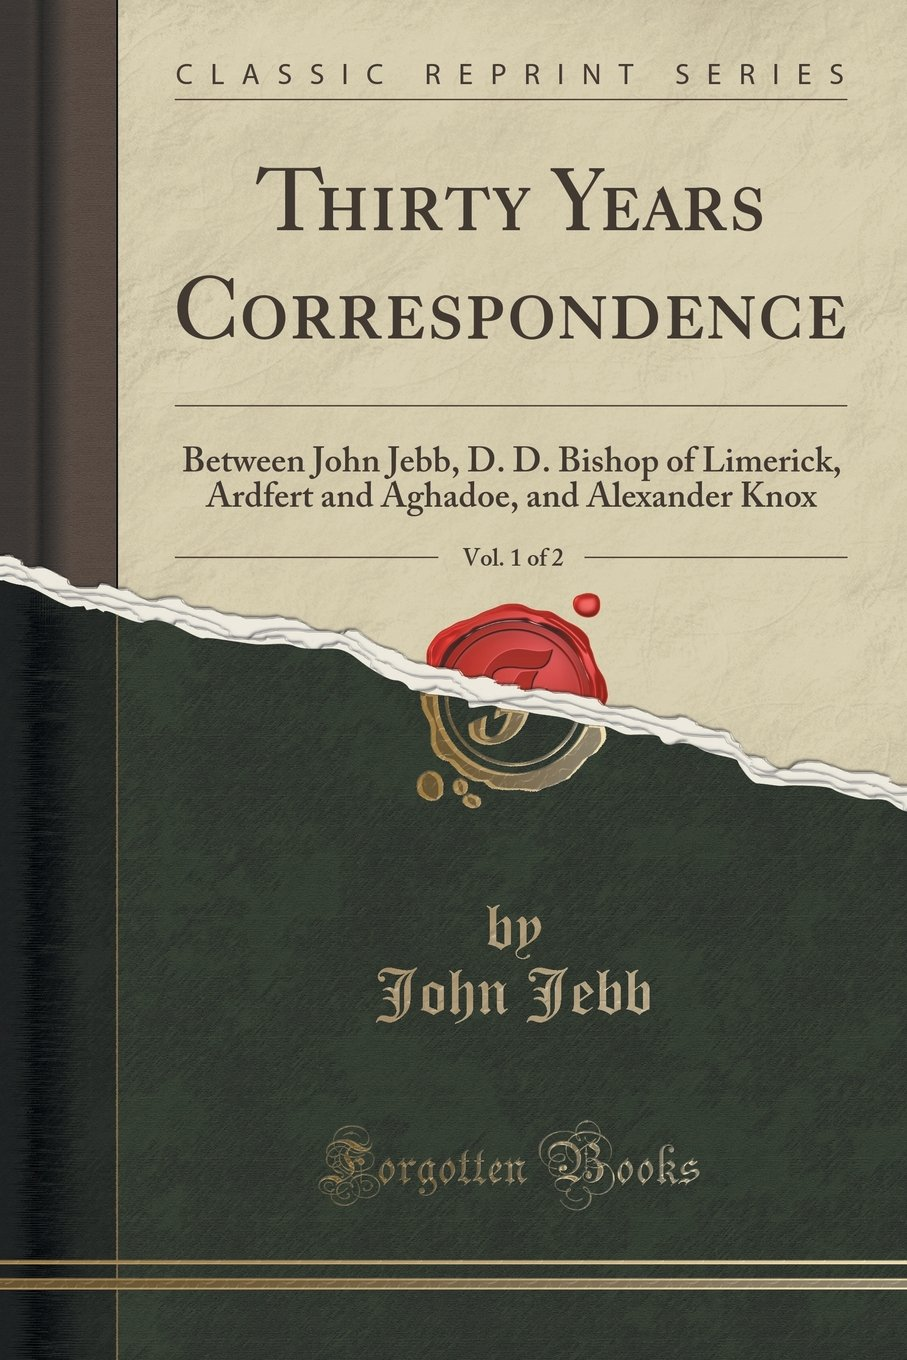 Download Thirty Years Correspondence, Vol. 1 of 2: Between John Jebb, D. D. Bishop of Limerick, Ardfert and Aghadoe, and Alexander Knox (Classic Reprint) PDF